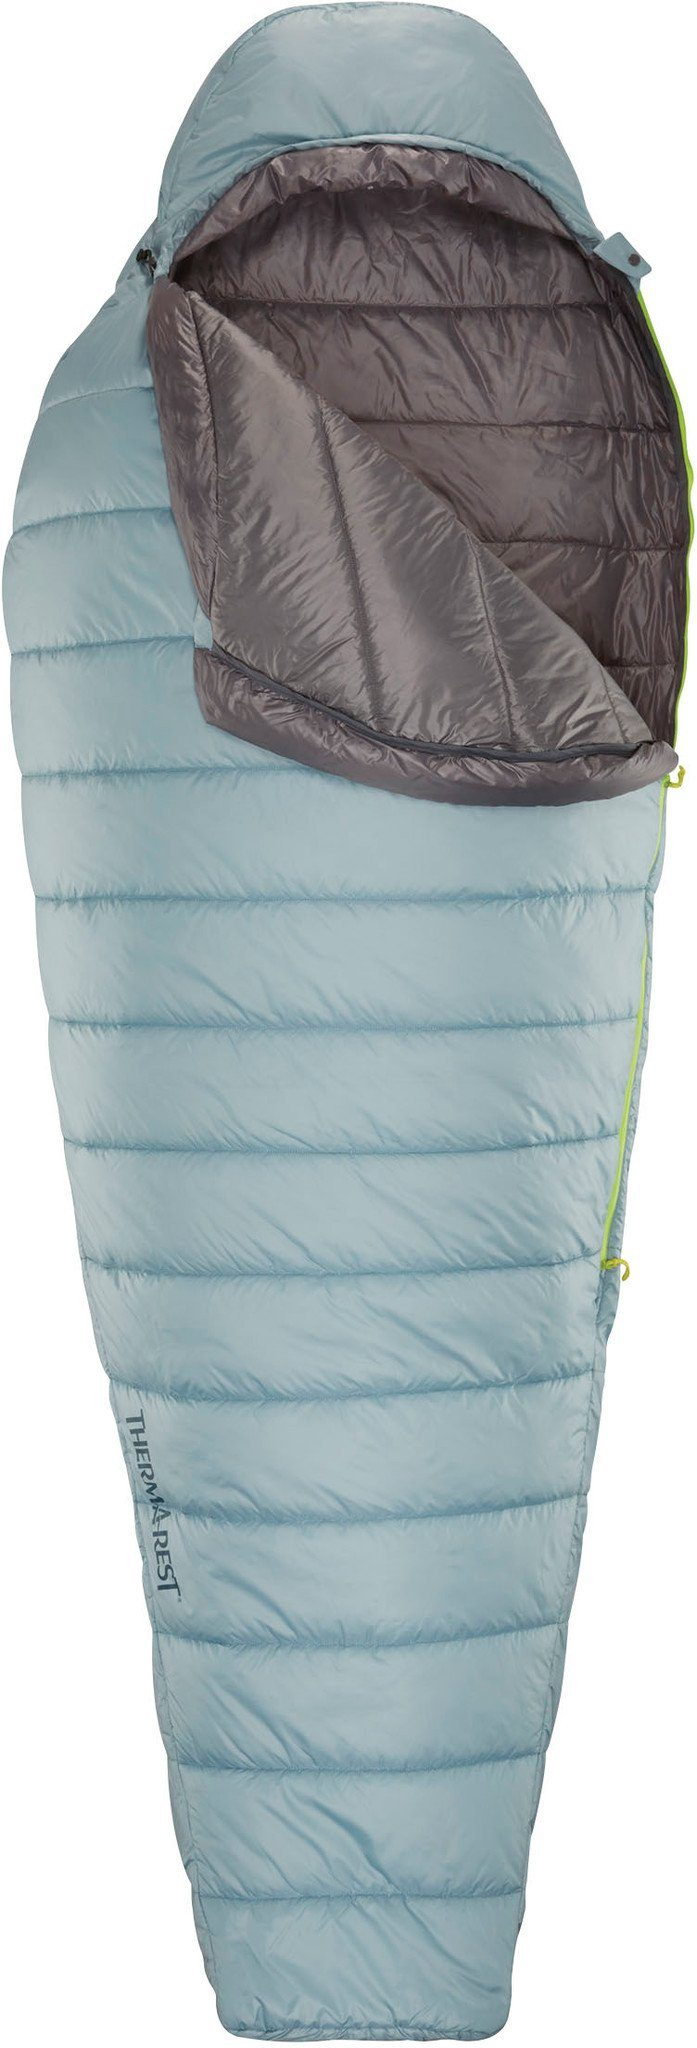 Therm-A-Rest Schlafsack »SpaceCowboy 45 Sleeping Bag Long«